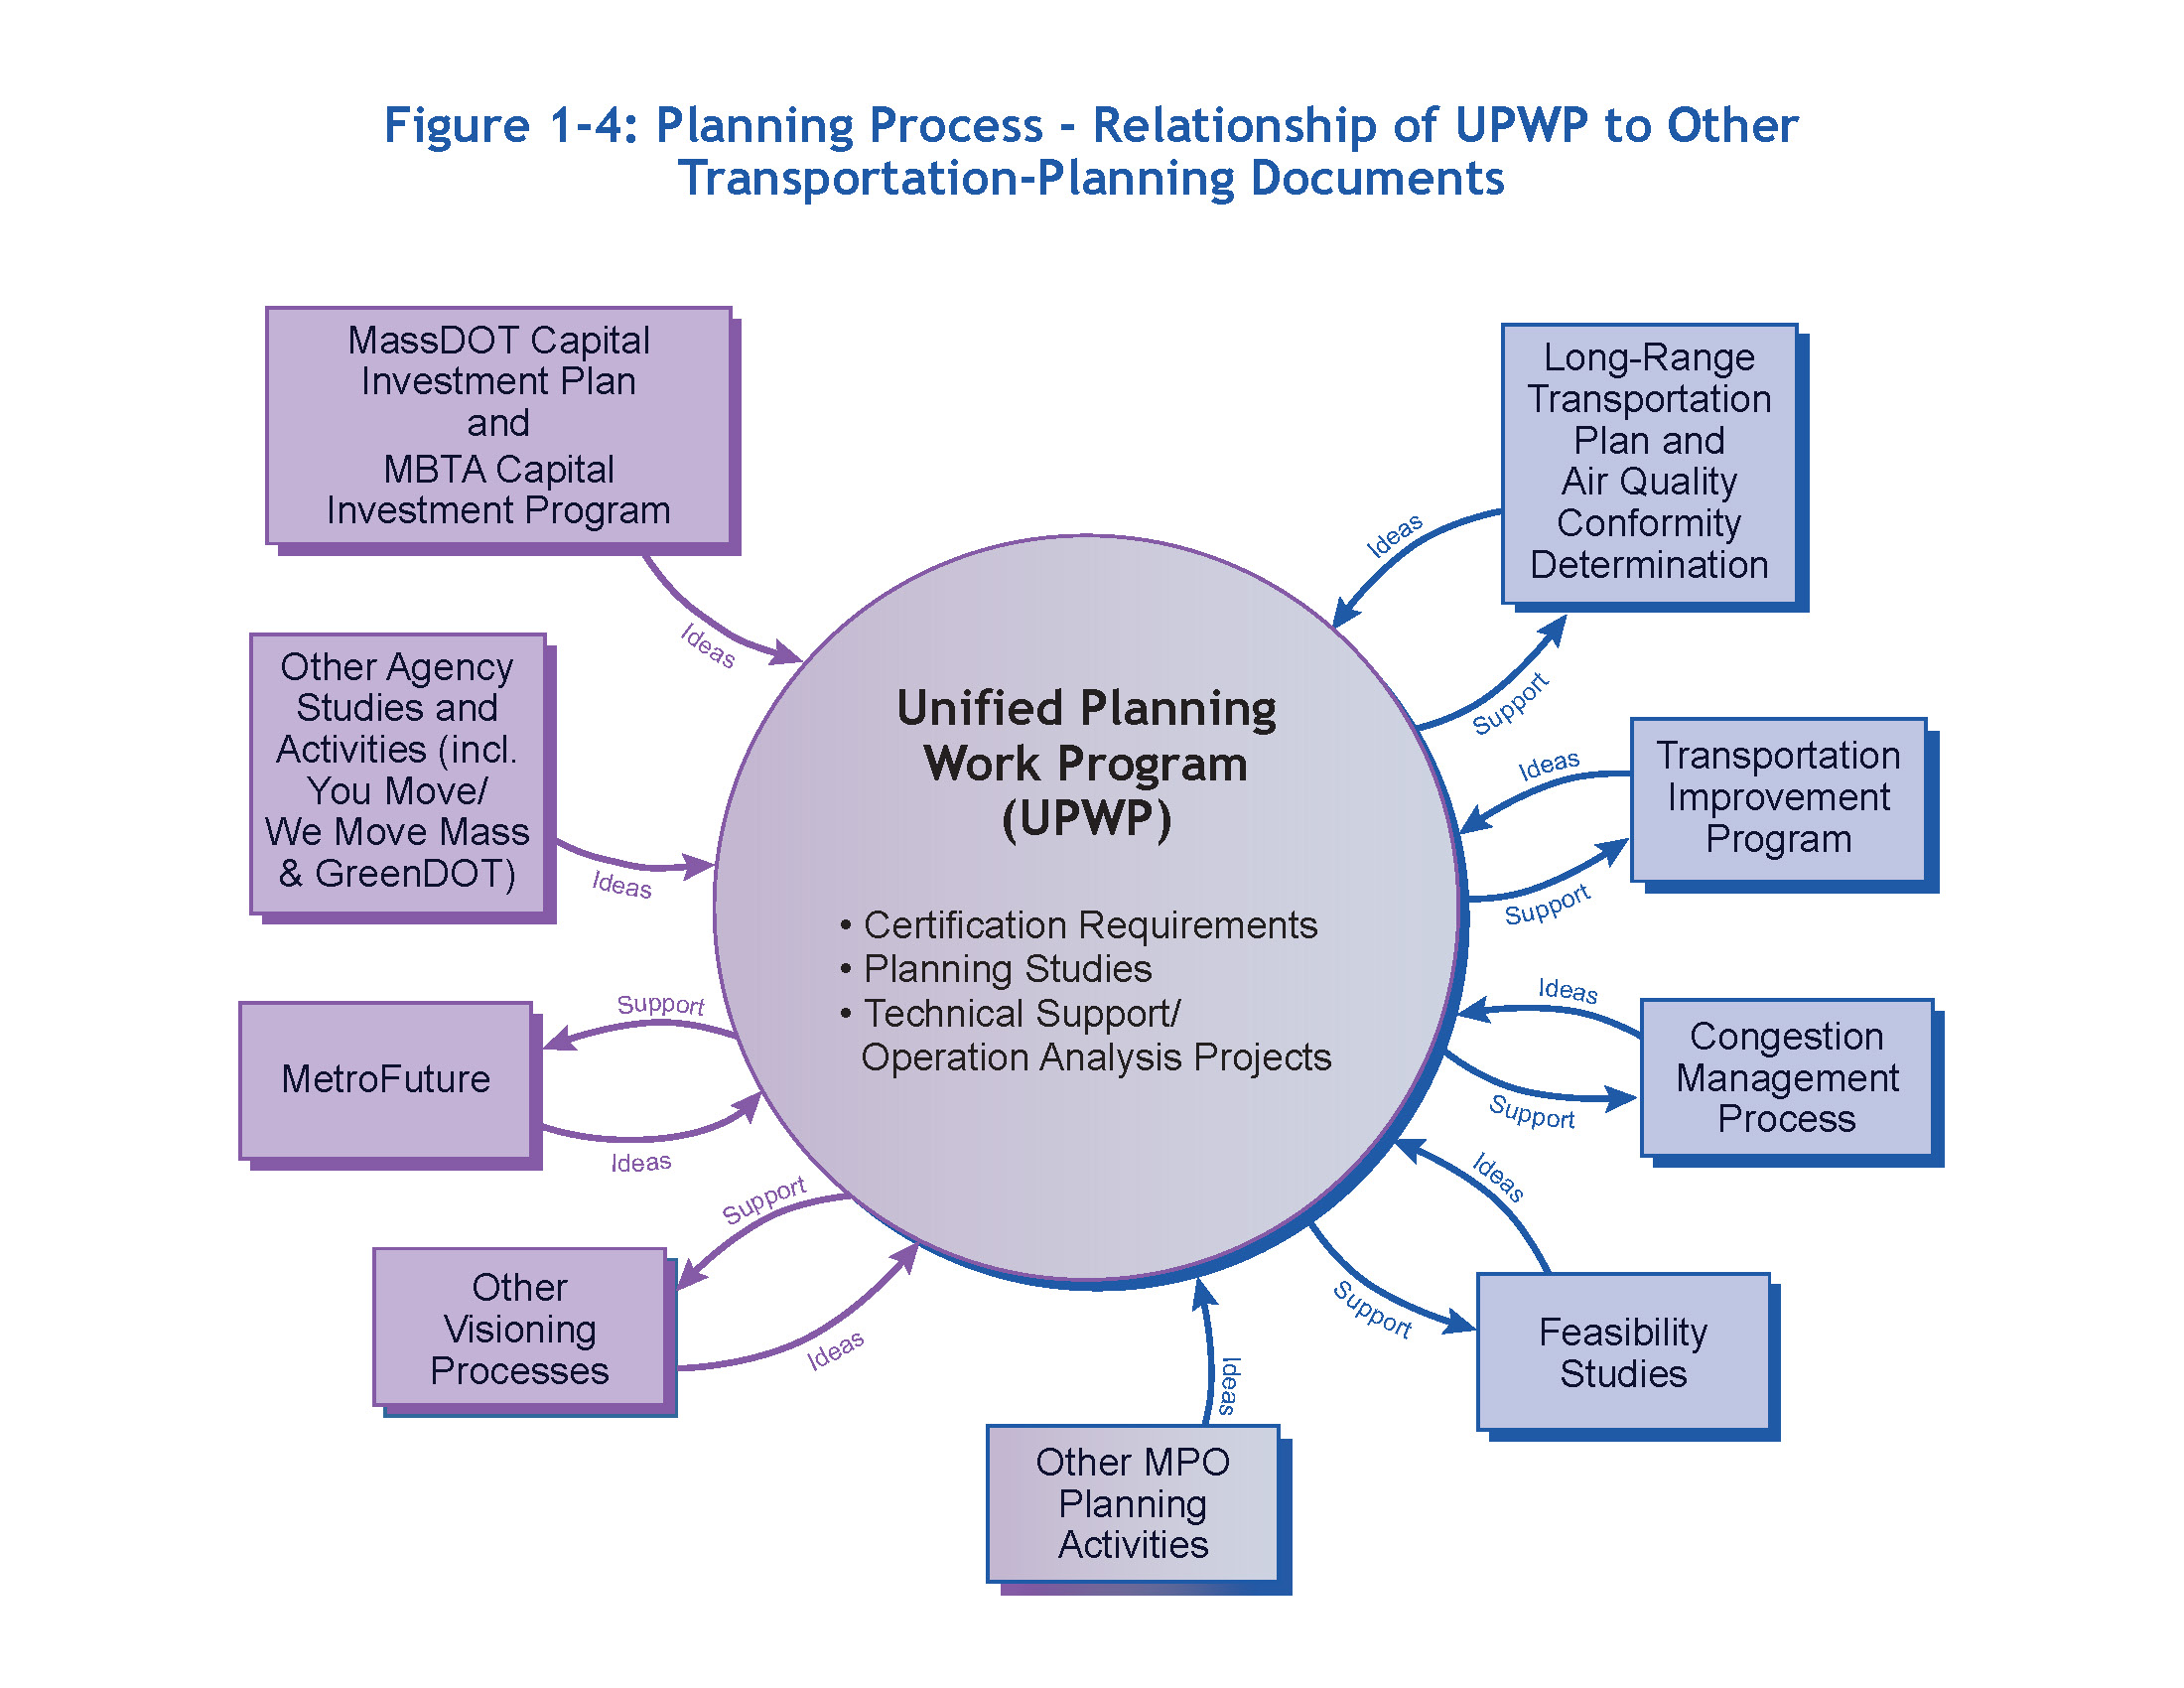 Updated draft ffy 2016 unified planning work program figure 1 4 planning process relationship of upwp to other transportation planning pooptronica